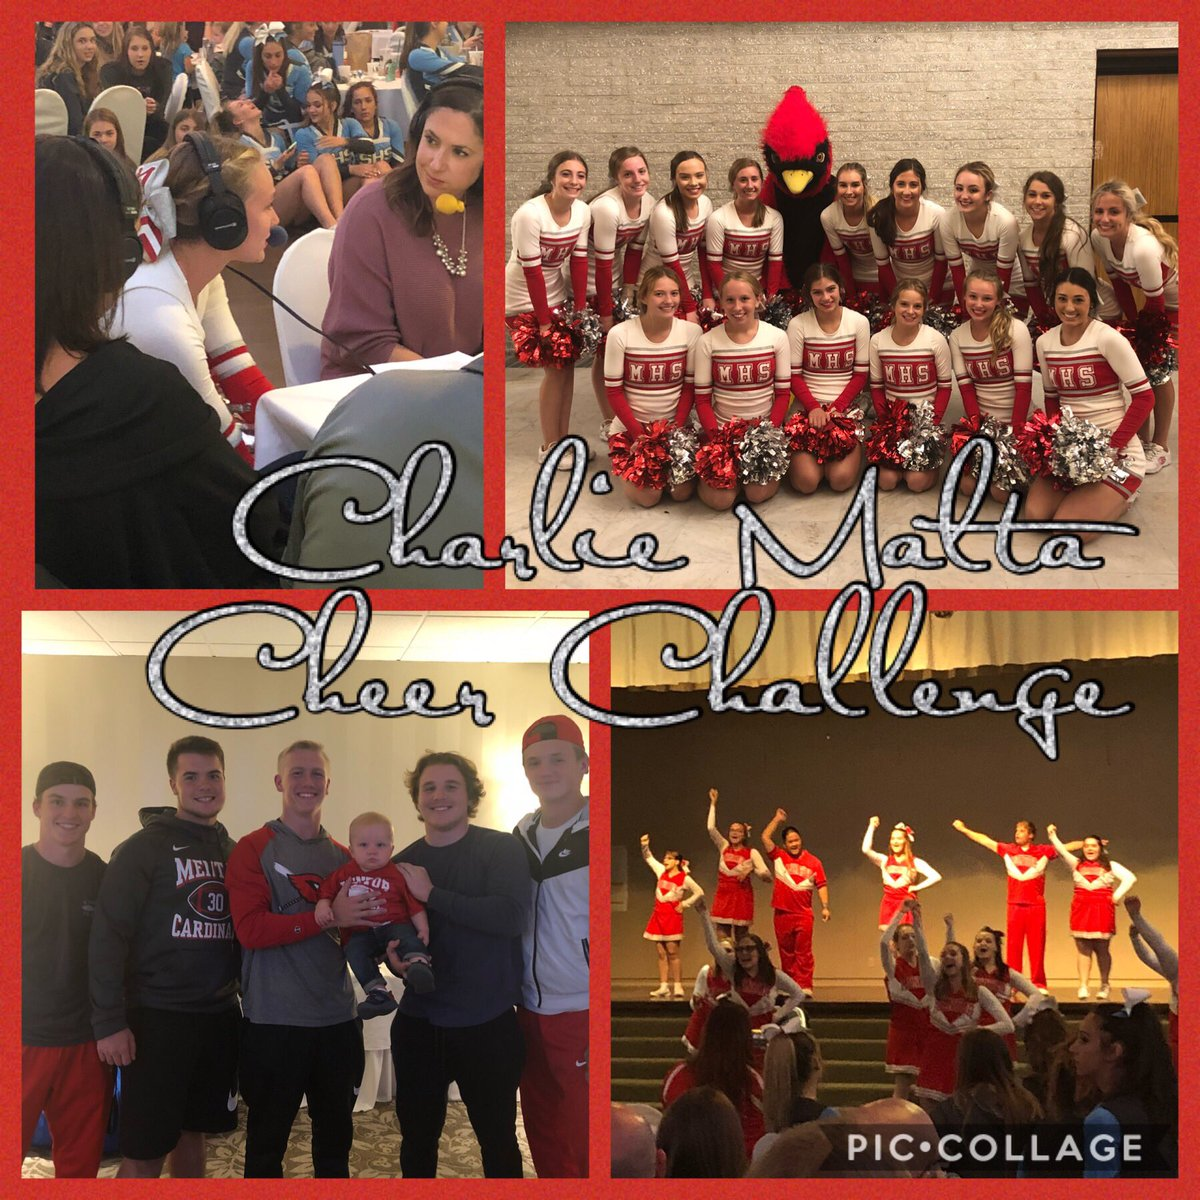 What an exciting night to see all of the area high schools showcase their  routines at the Charlie Malta Cheer Challenge! Congrats to the Sparkles Cheerleaders on their great performance tonight! #OnceaCard<br>http://pic.twitter.com/dNcq4n6AXS